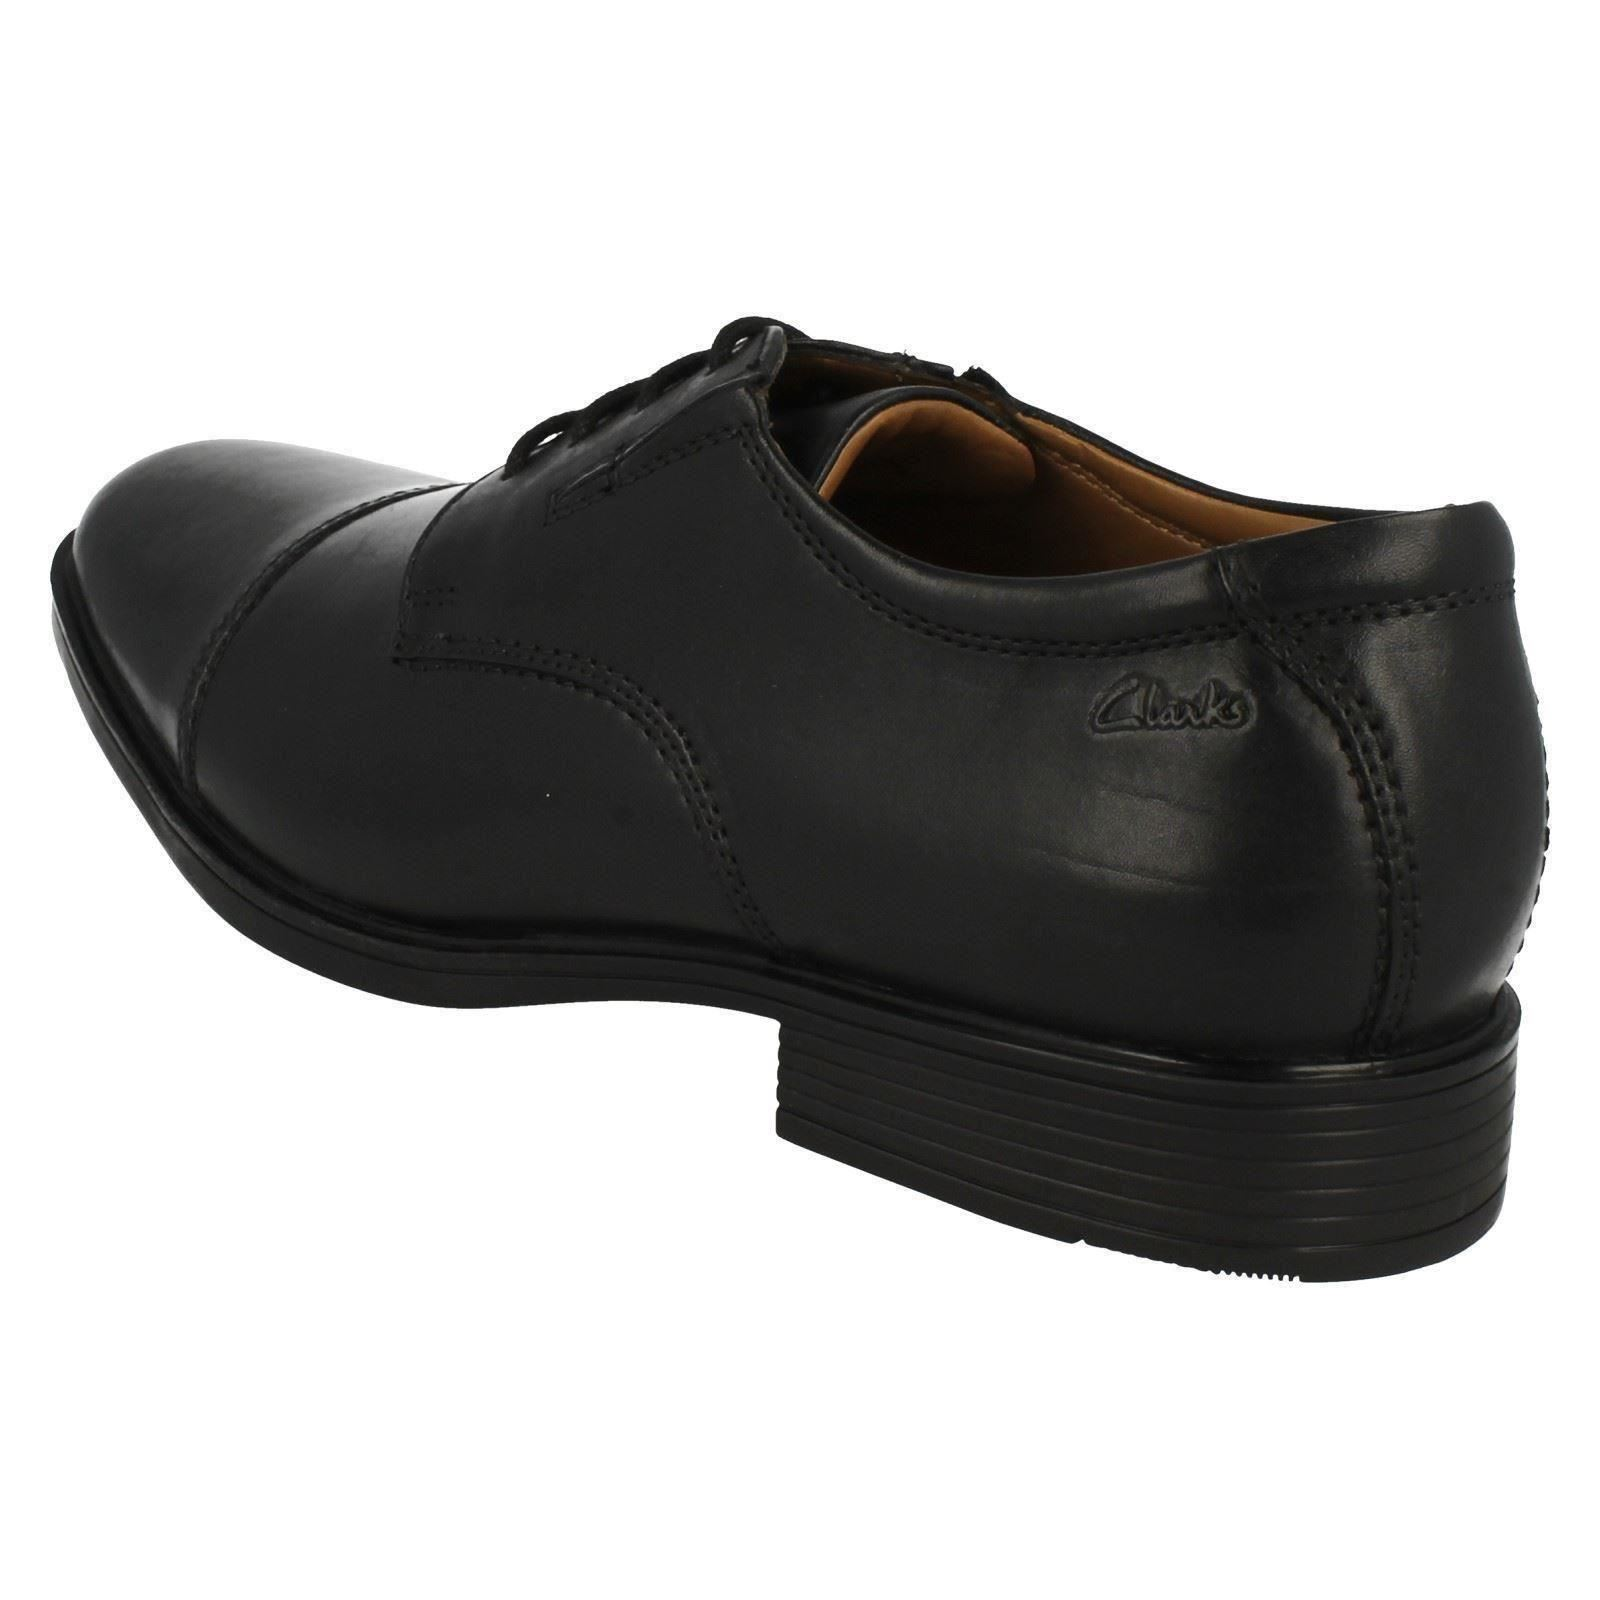 Mens-Clarks-Formal-Lace-Up-Shoes-Tilden-Cap thumbnail 5